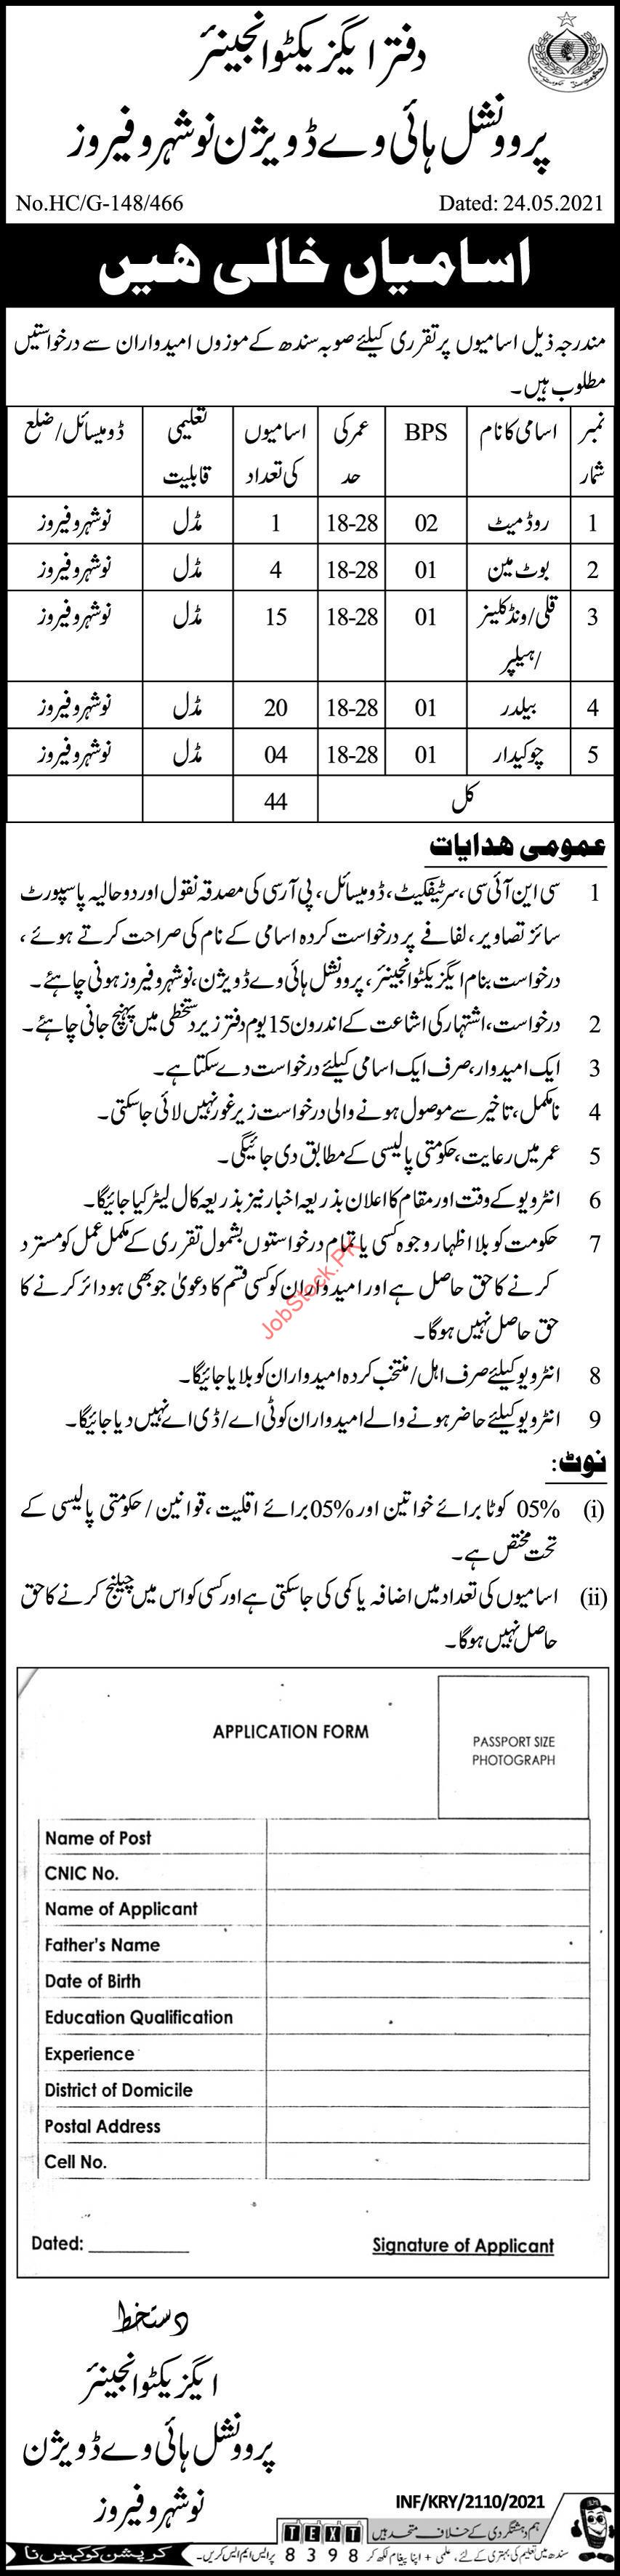 Latest Provincial Highway Division Labor Posts Naushahro Feroze 2021 Advertisement And Application Form